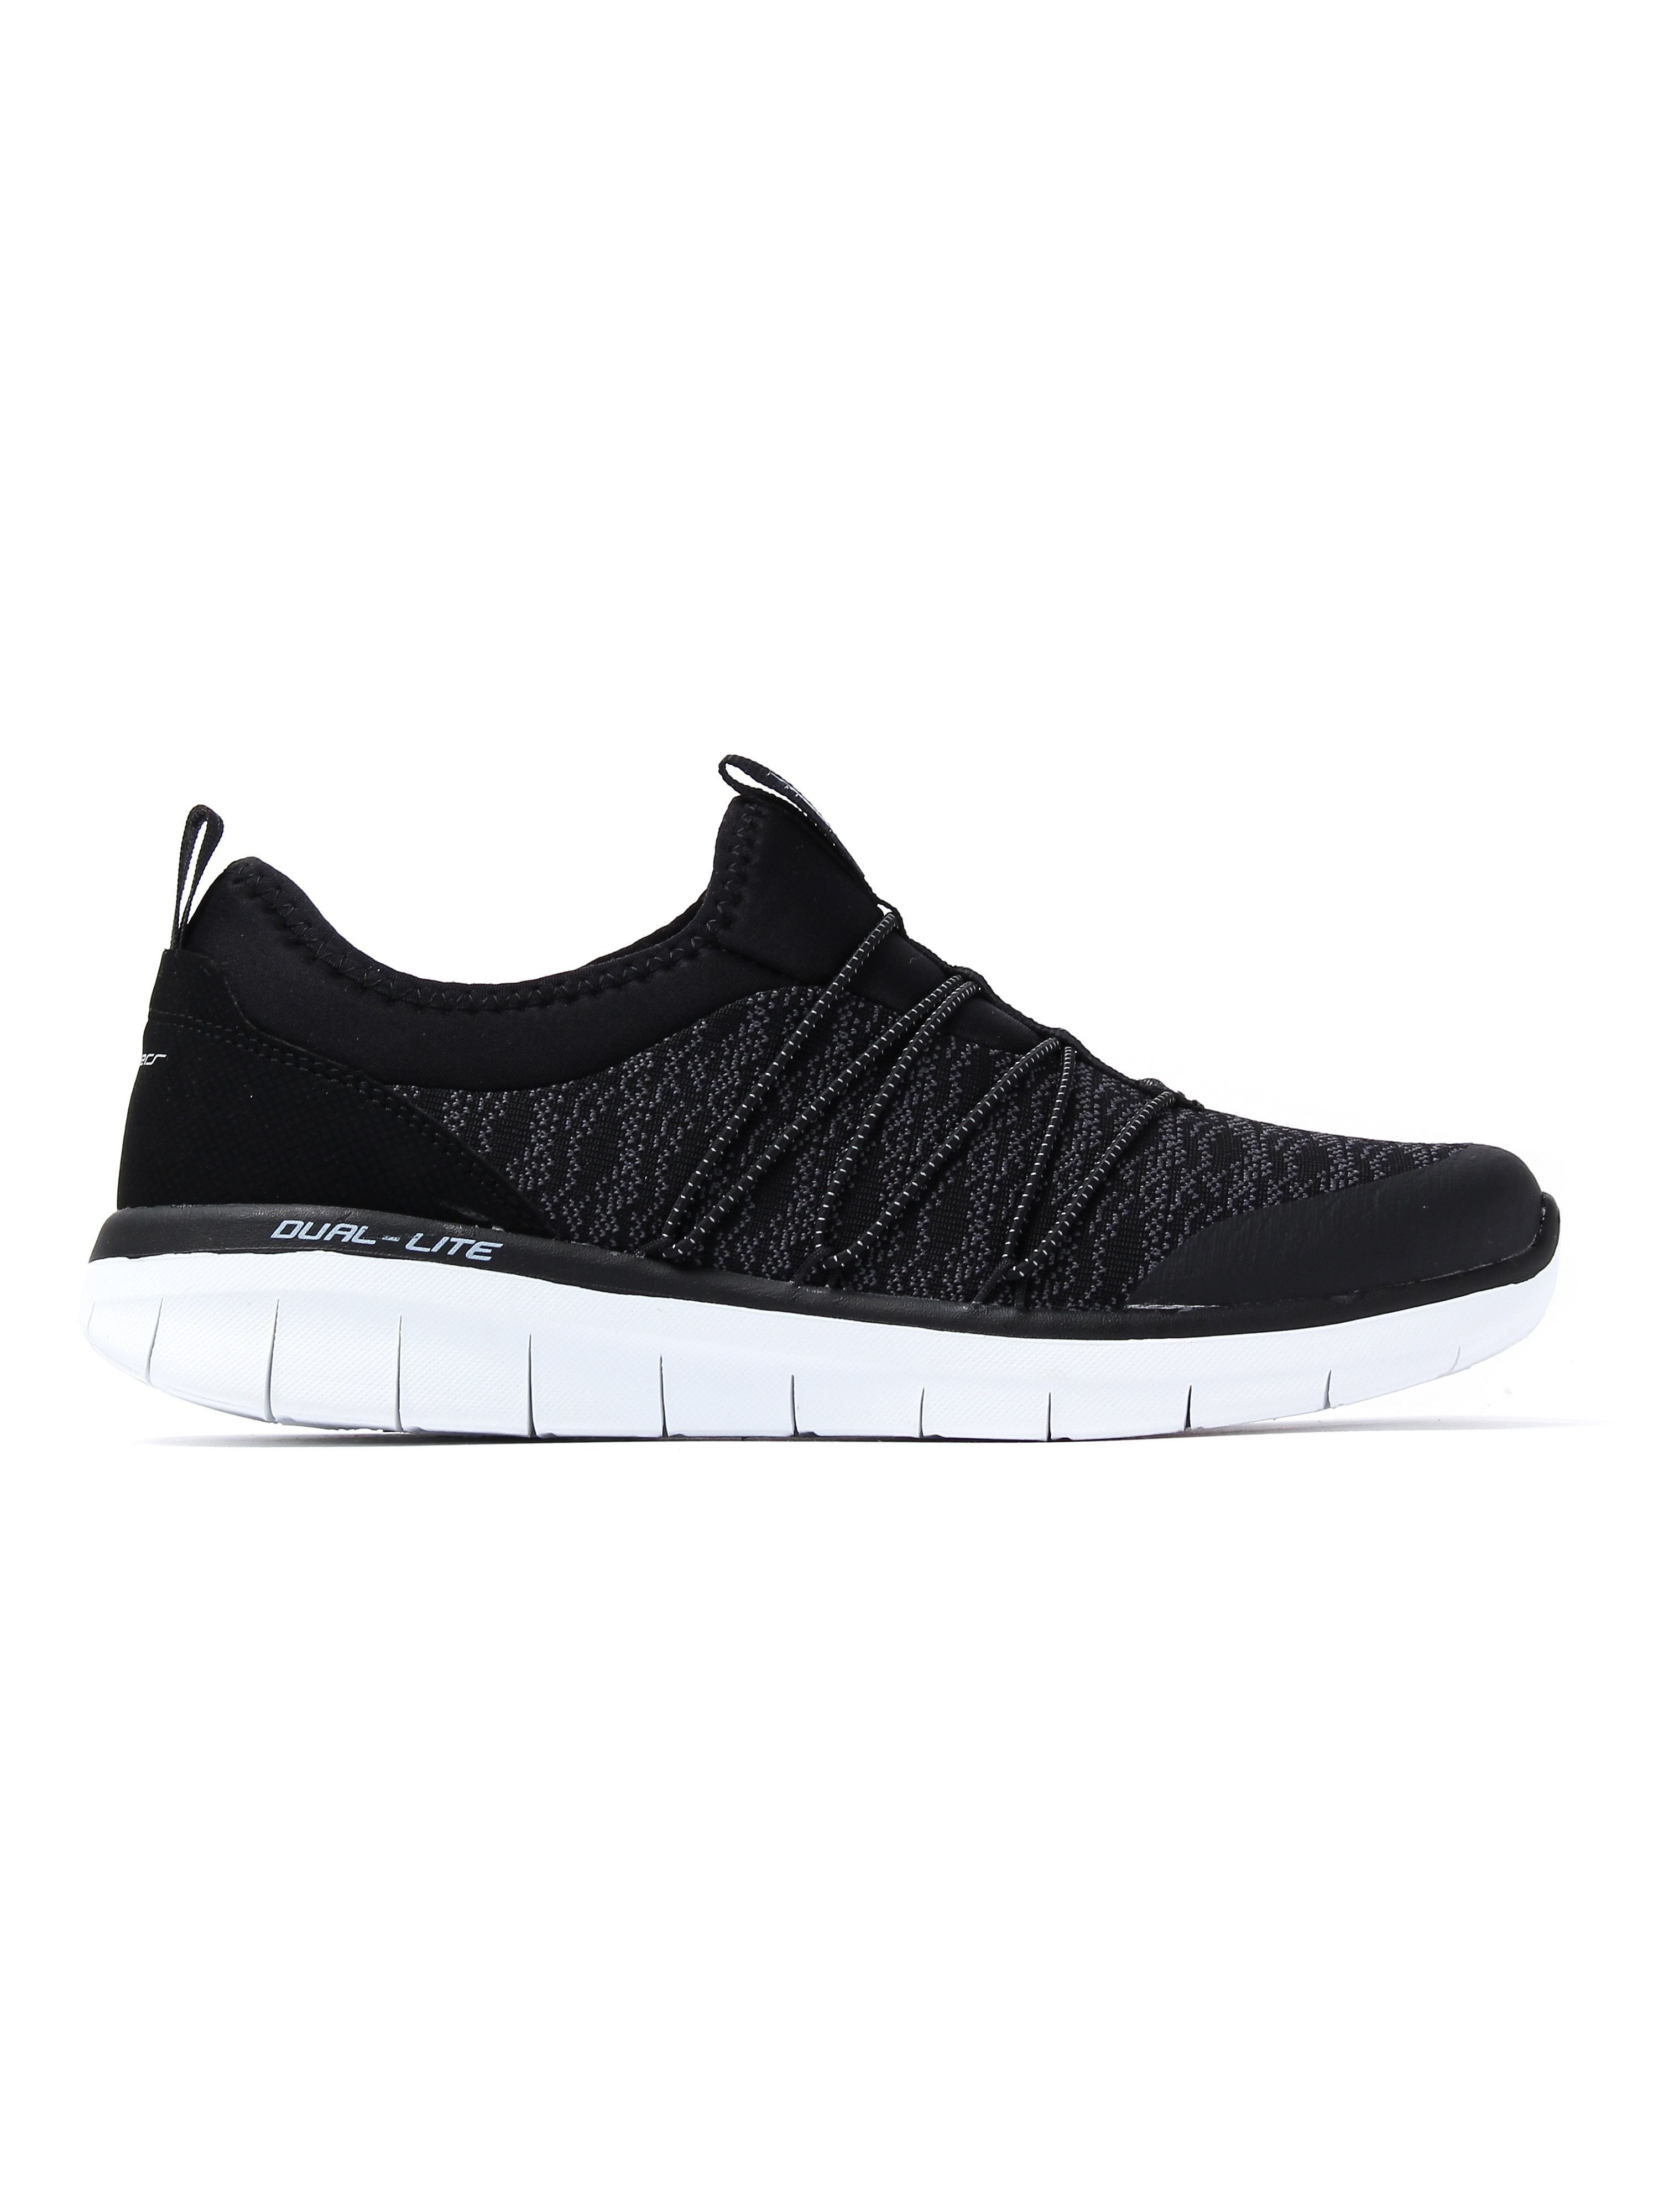 Skechers Women's Synergy 2.0 Simply Chic Trainers - Black / White